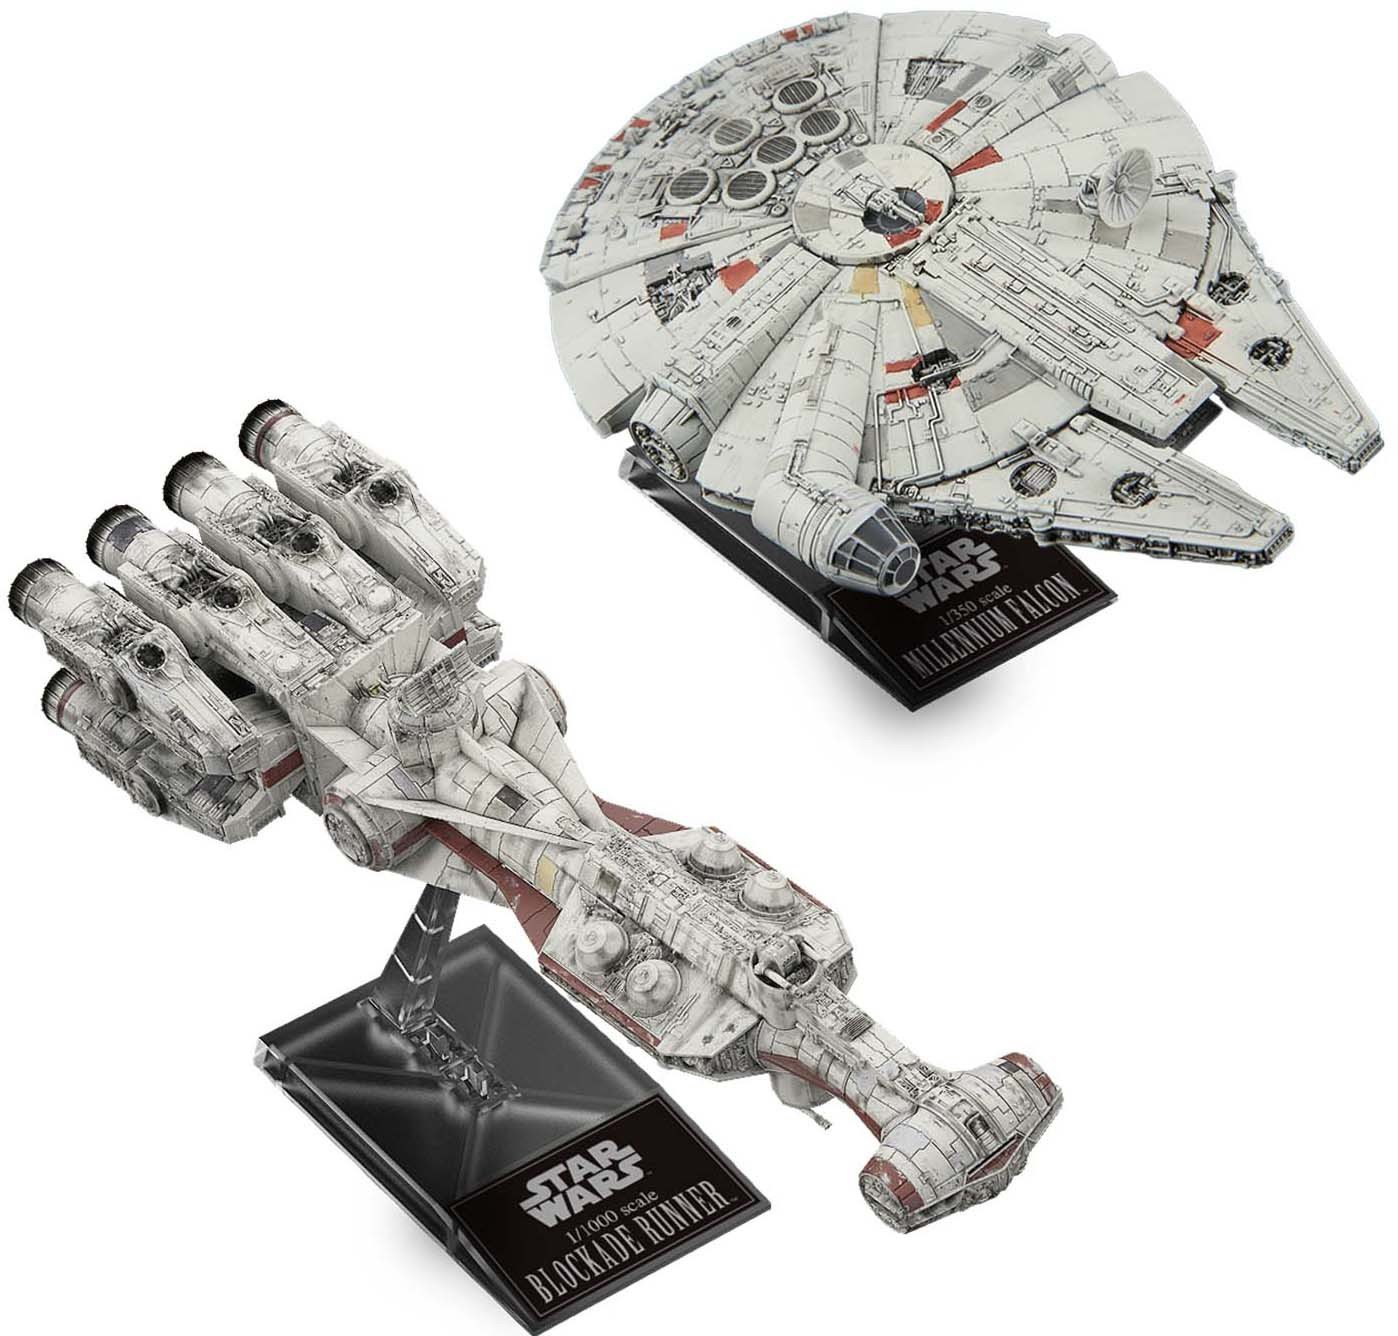 ANH Blockade Runner & Millennium Falcon Model Kit Set